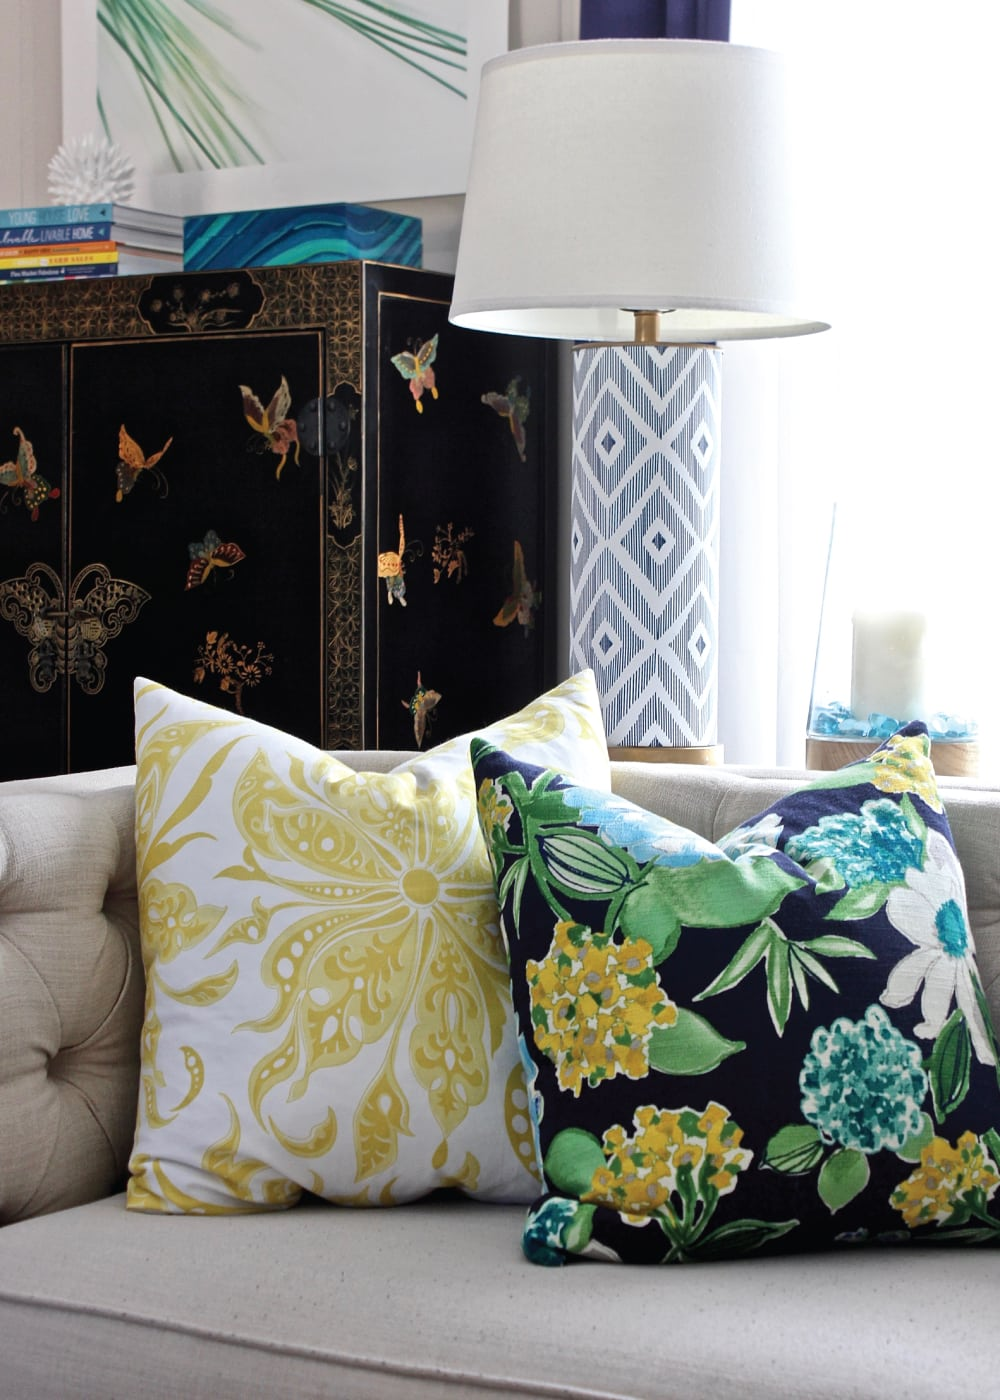 Learn how to mix patterns like a pro by employing these tried-and-true designer tricks!